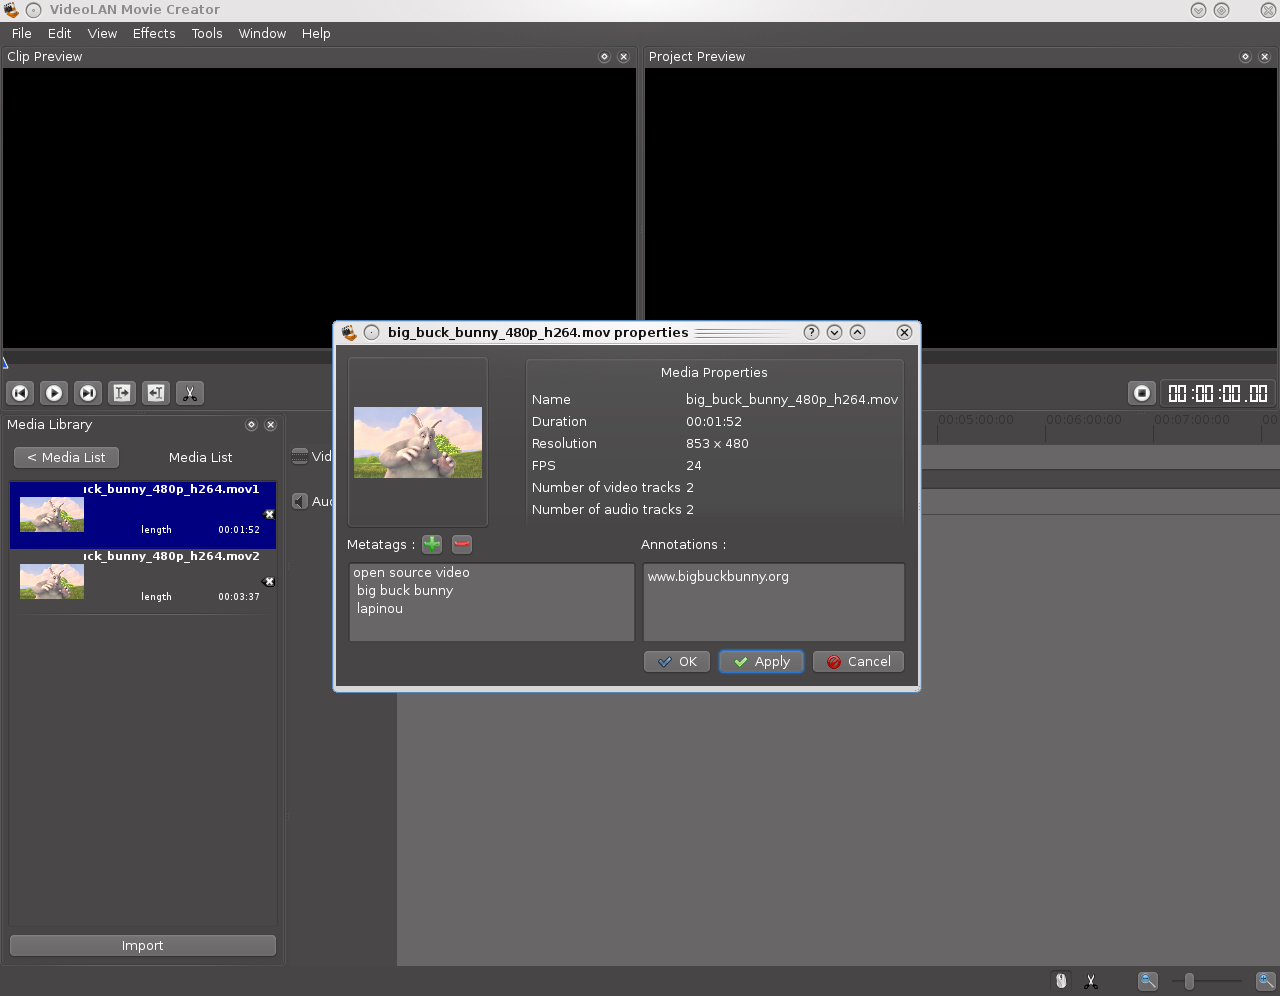 VLMC, open source video editor - VideoLAN